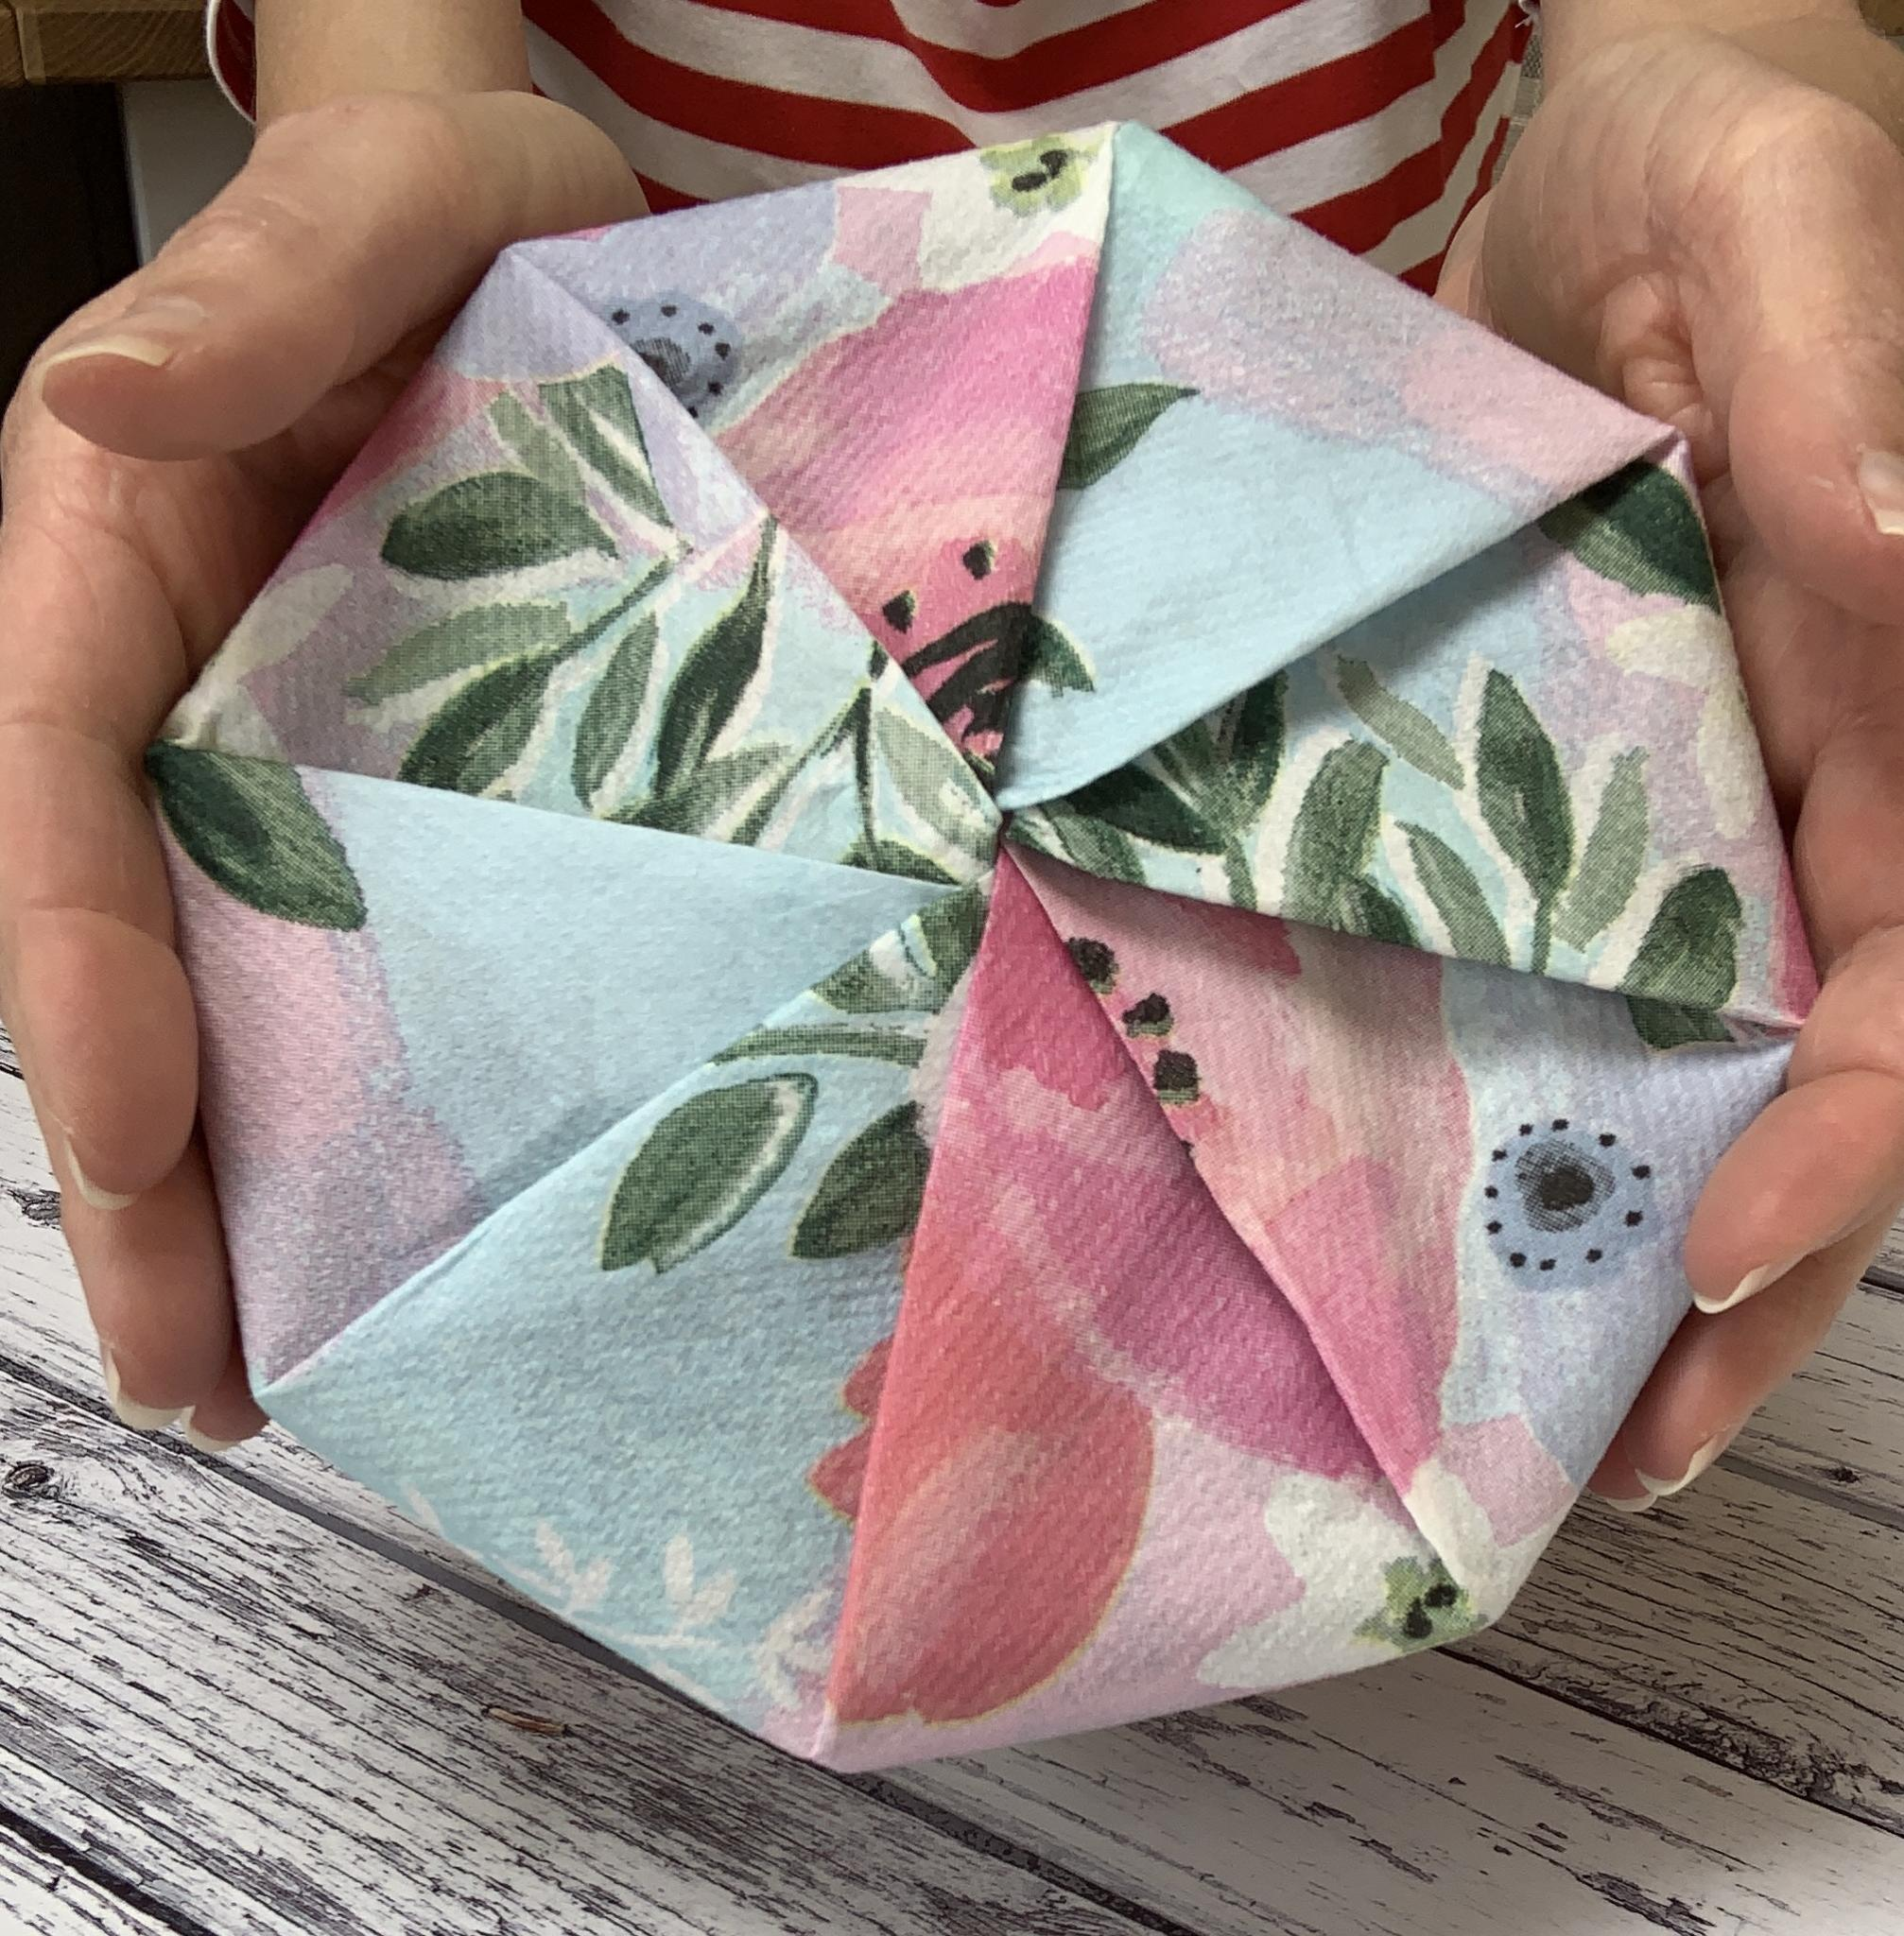 8 sided box of chocolates wrapped in a floral giftwrap